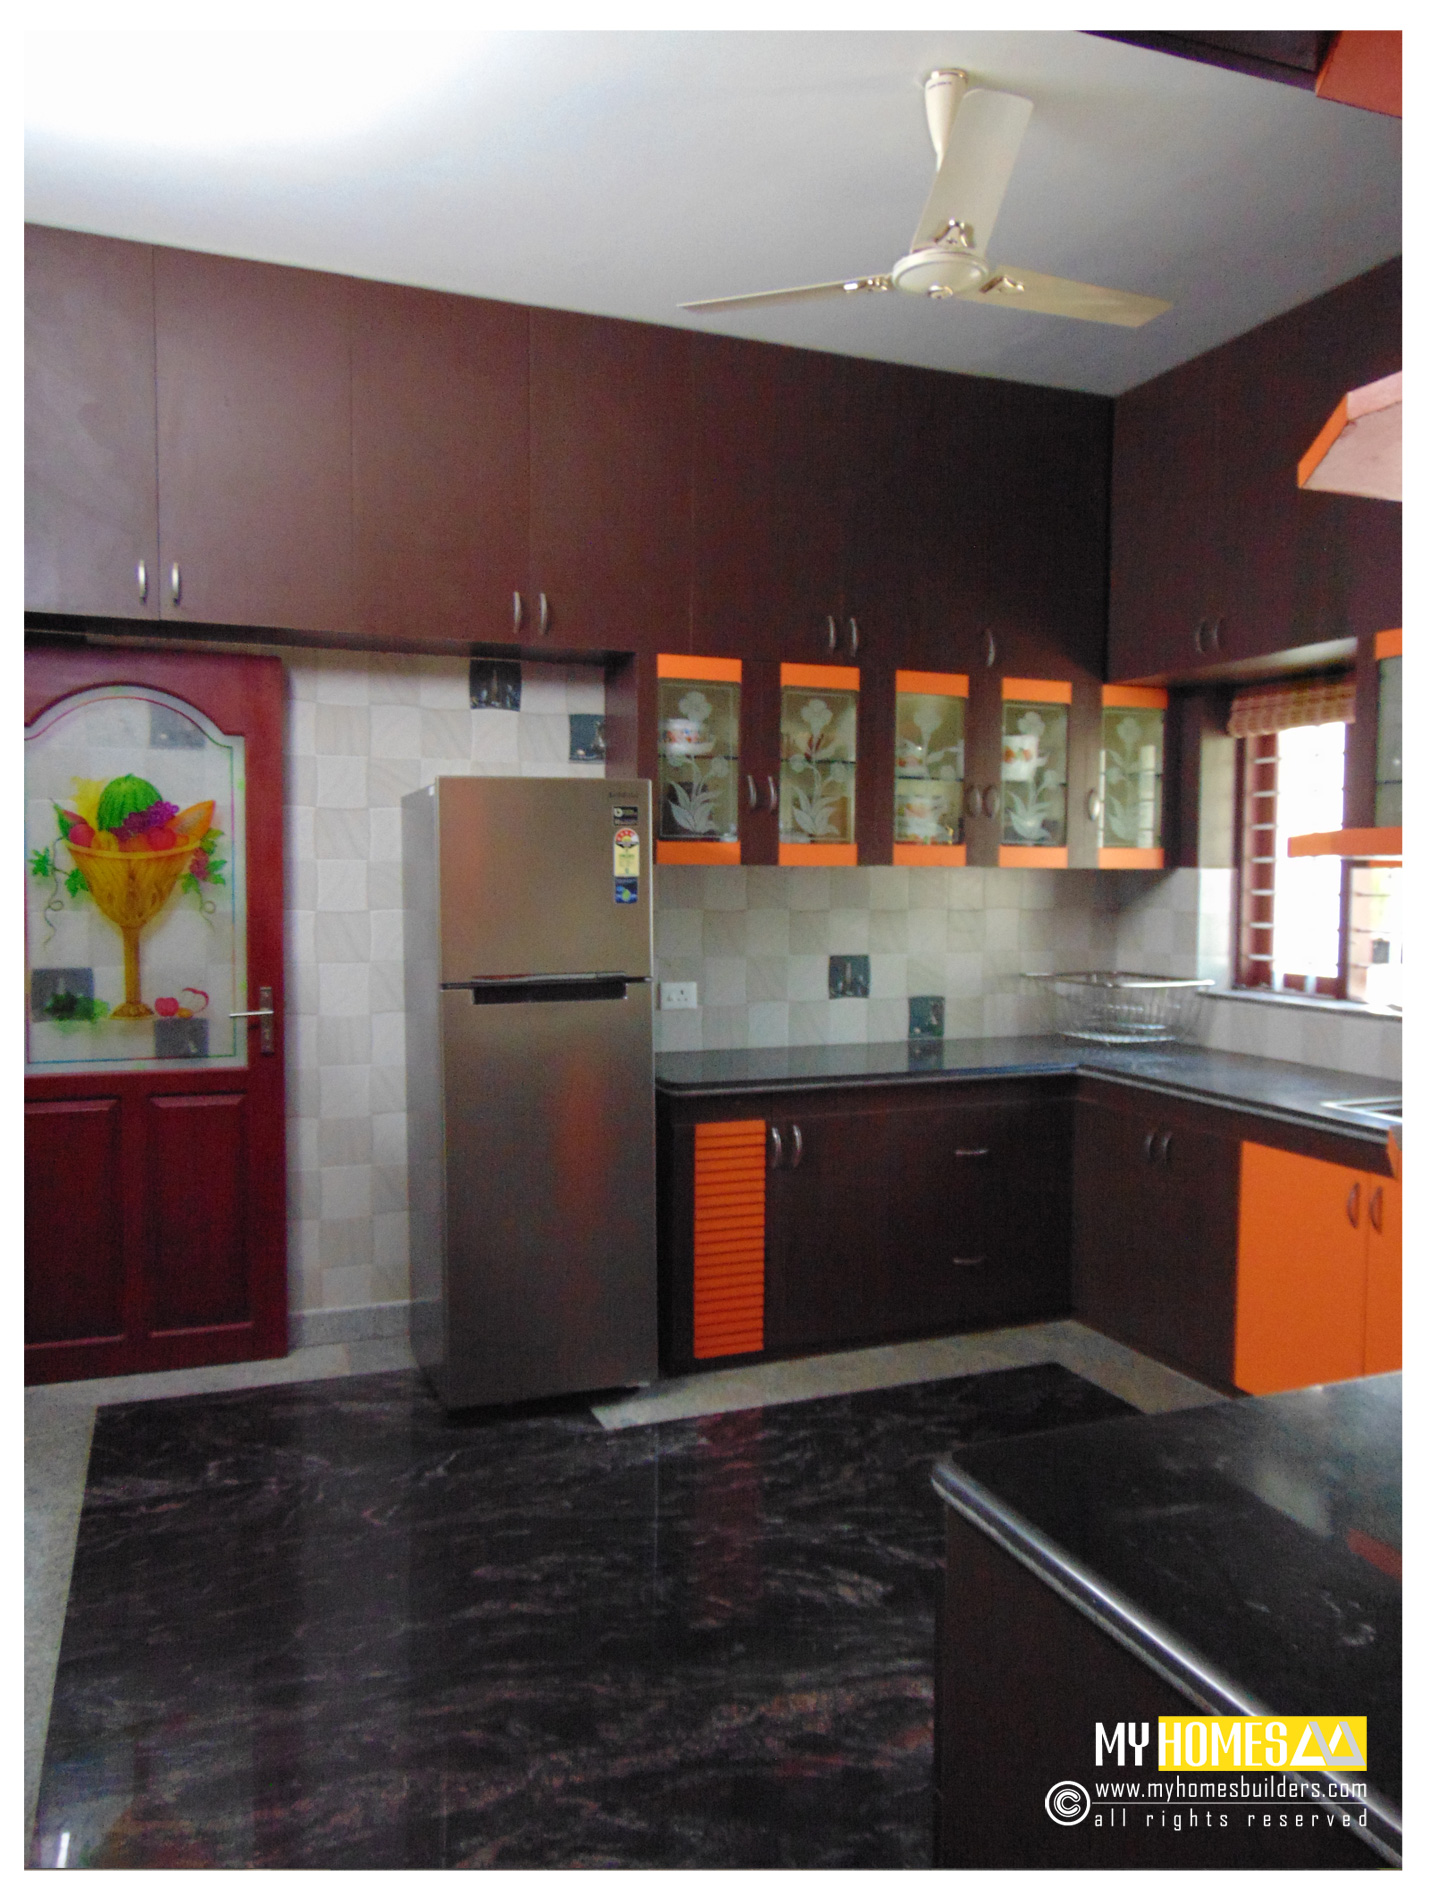 kerala kitchen designs idea in modular style for house in india